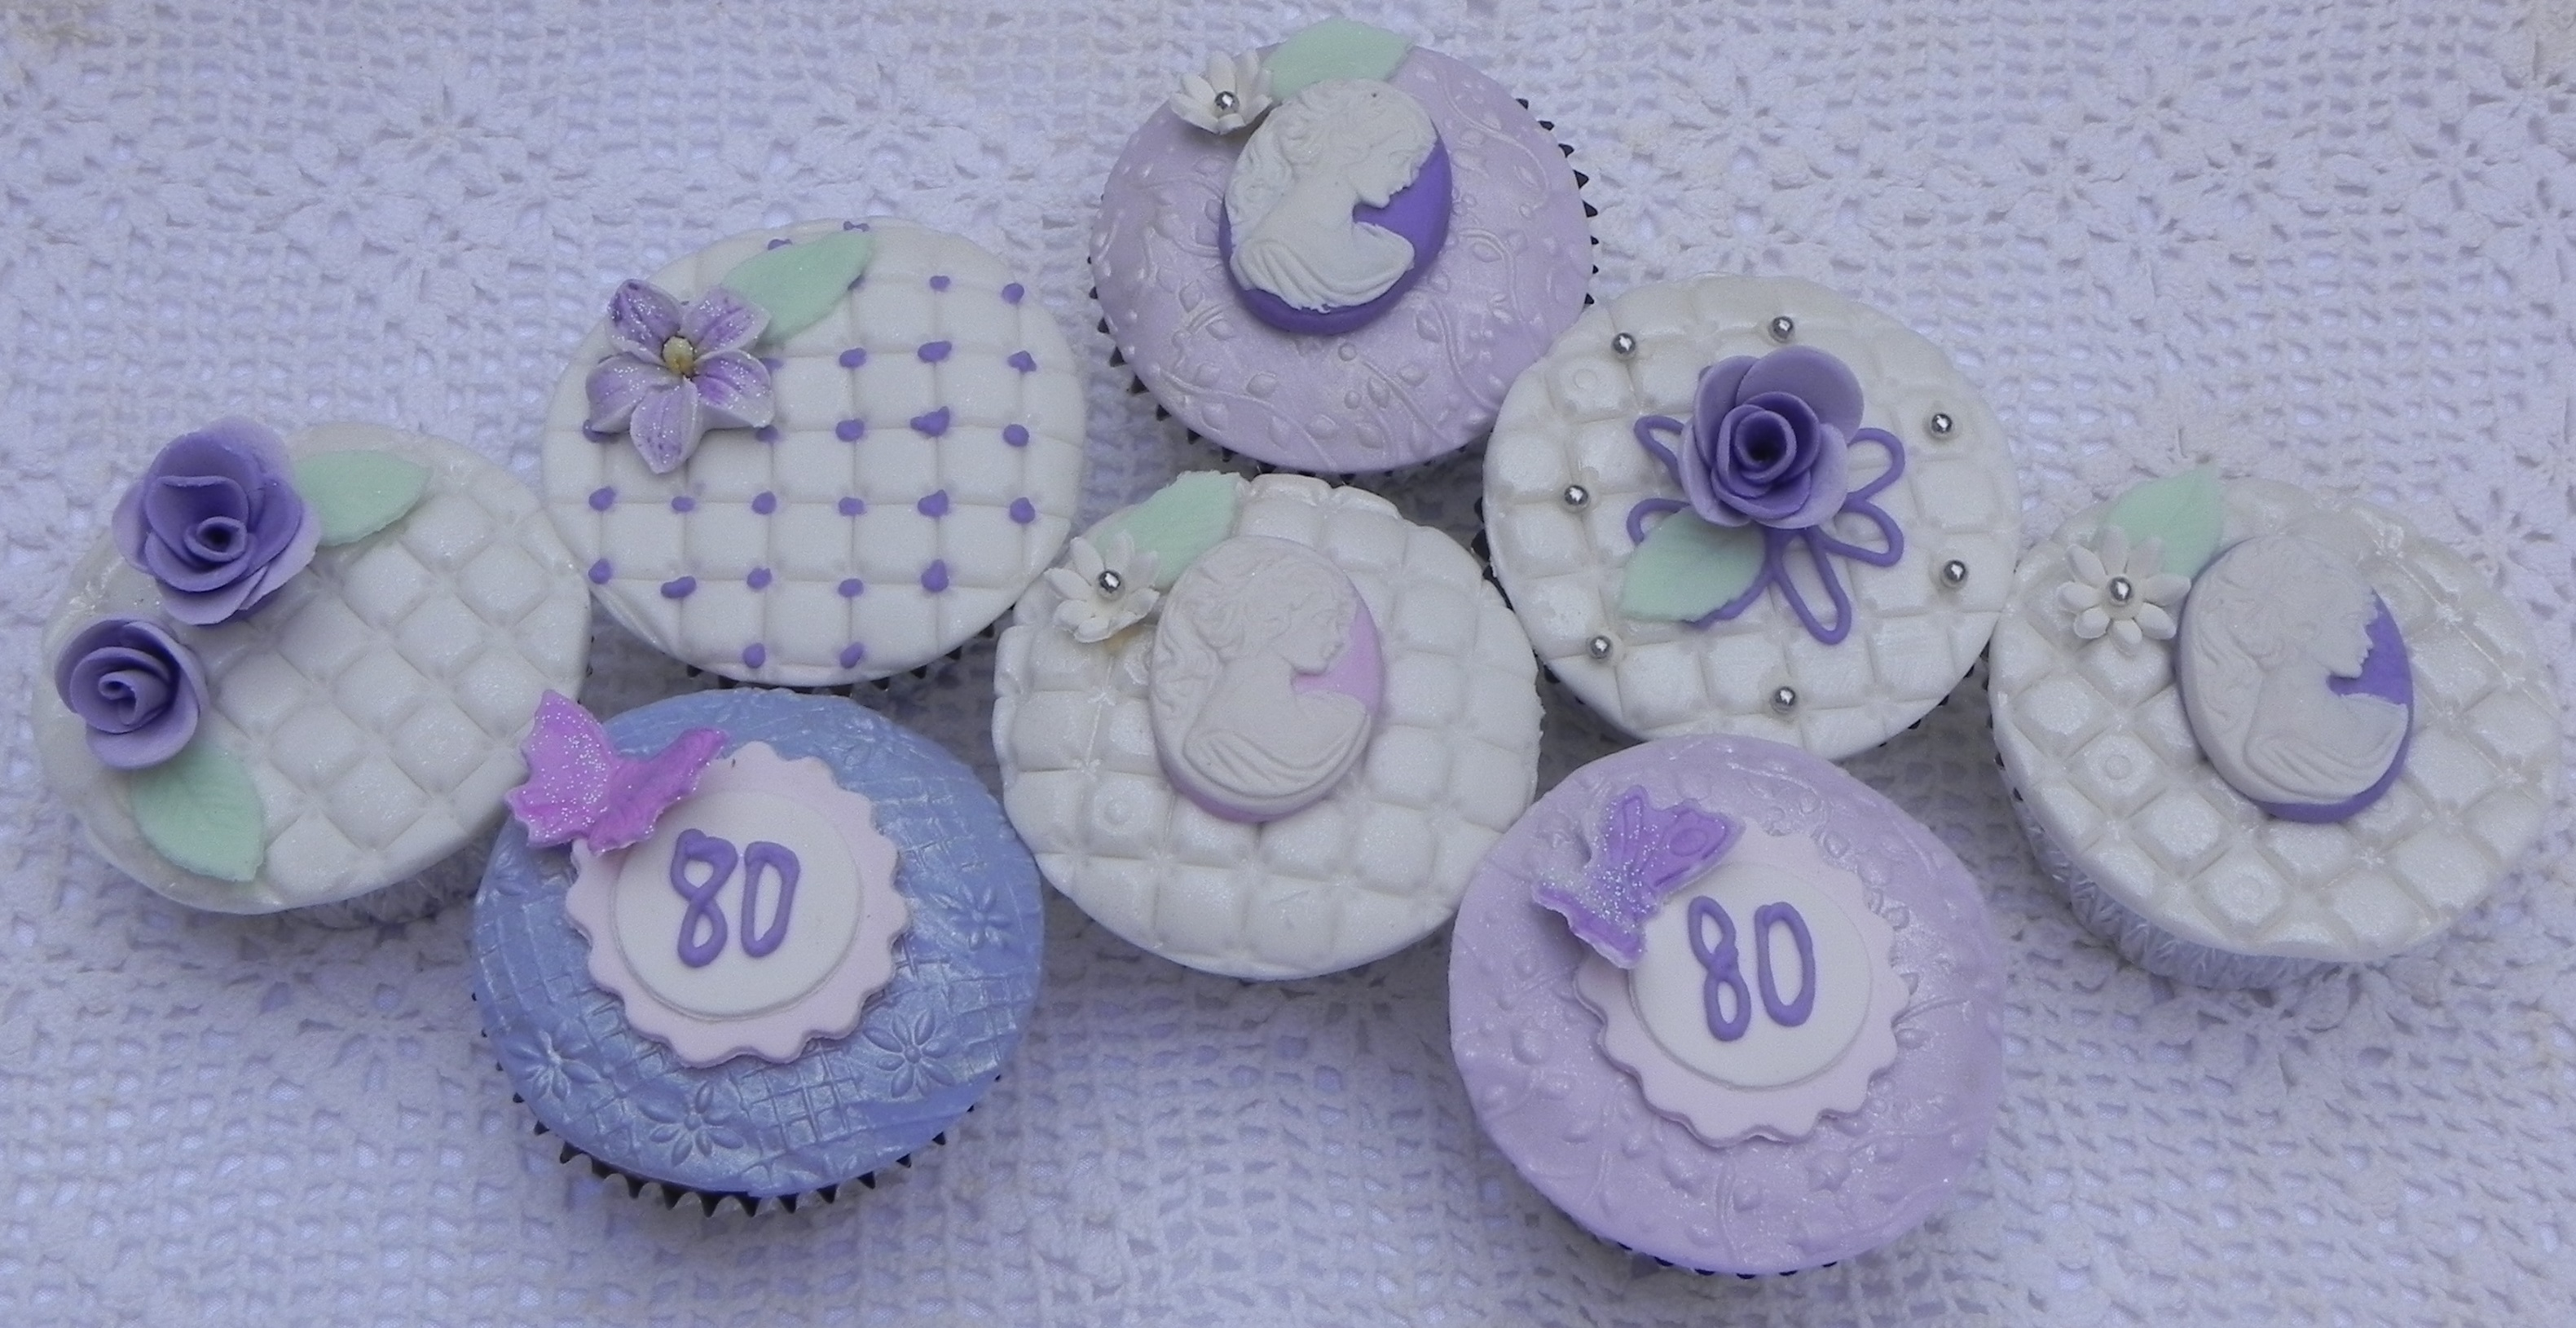 Cupcake Decorated With Fondant Sugar Flowers And Cameos